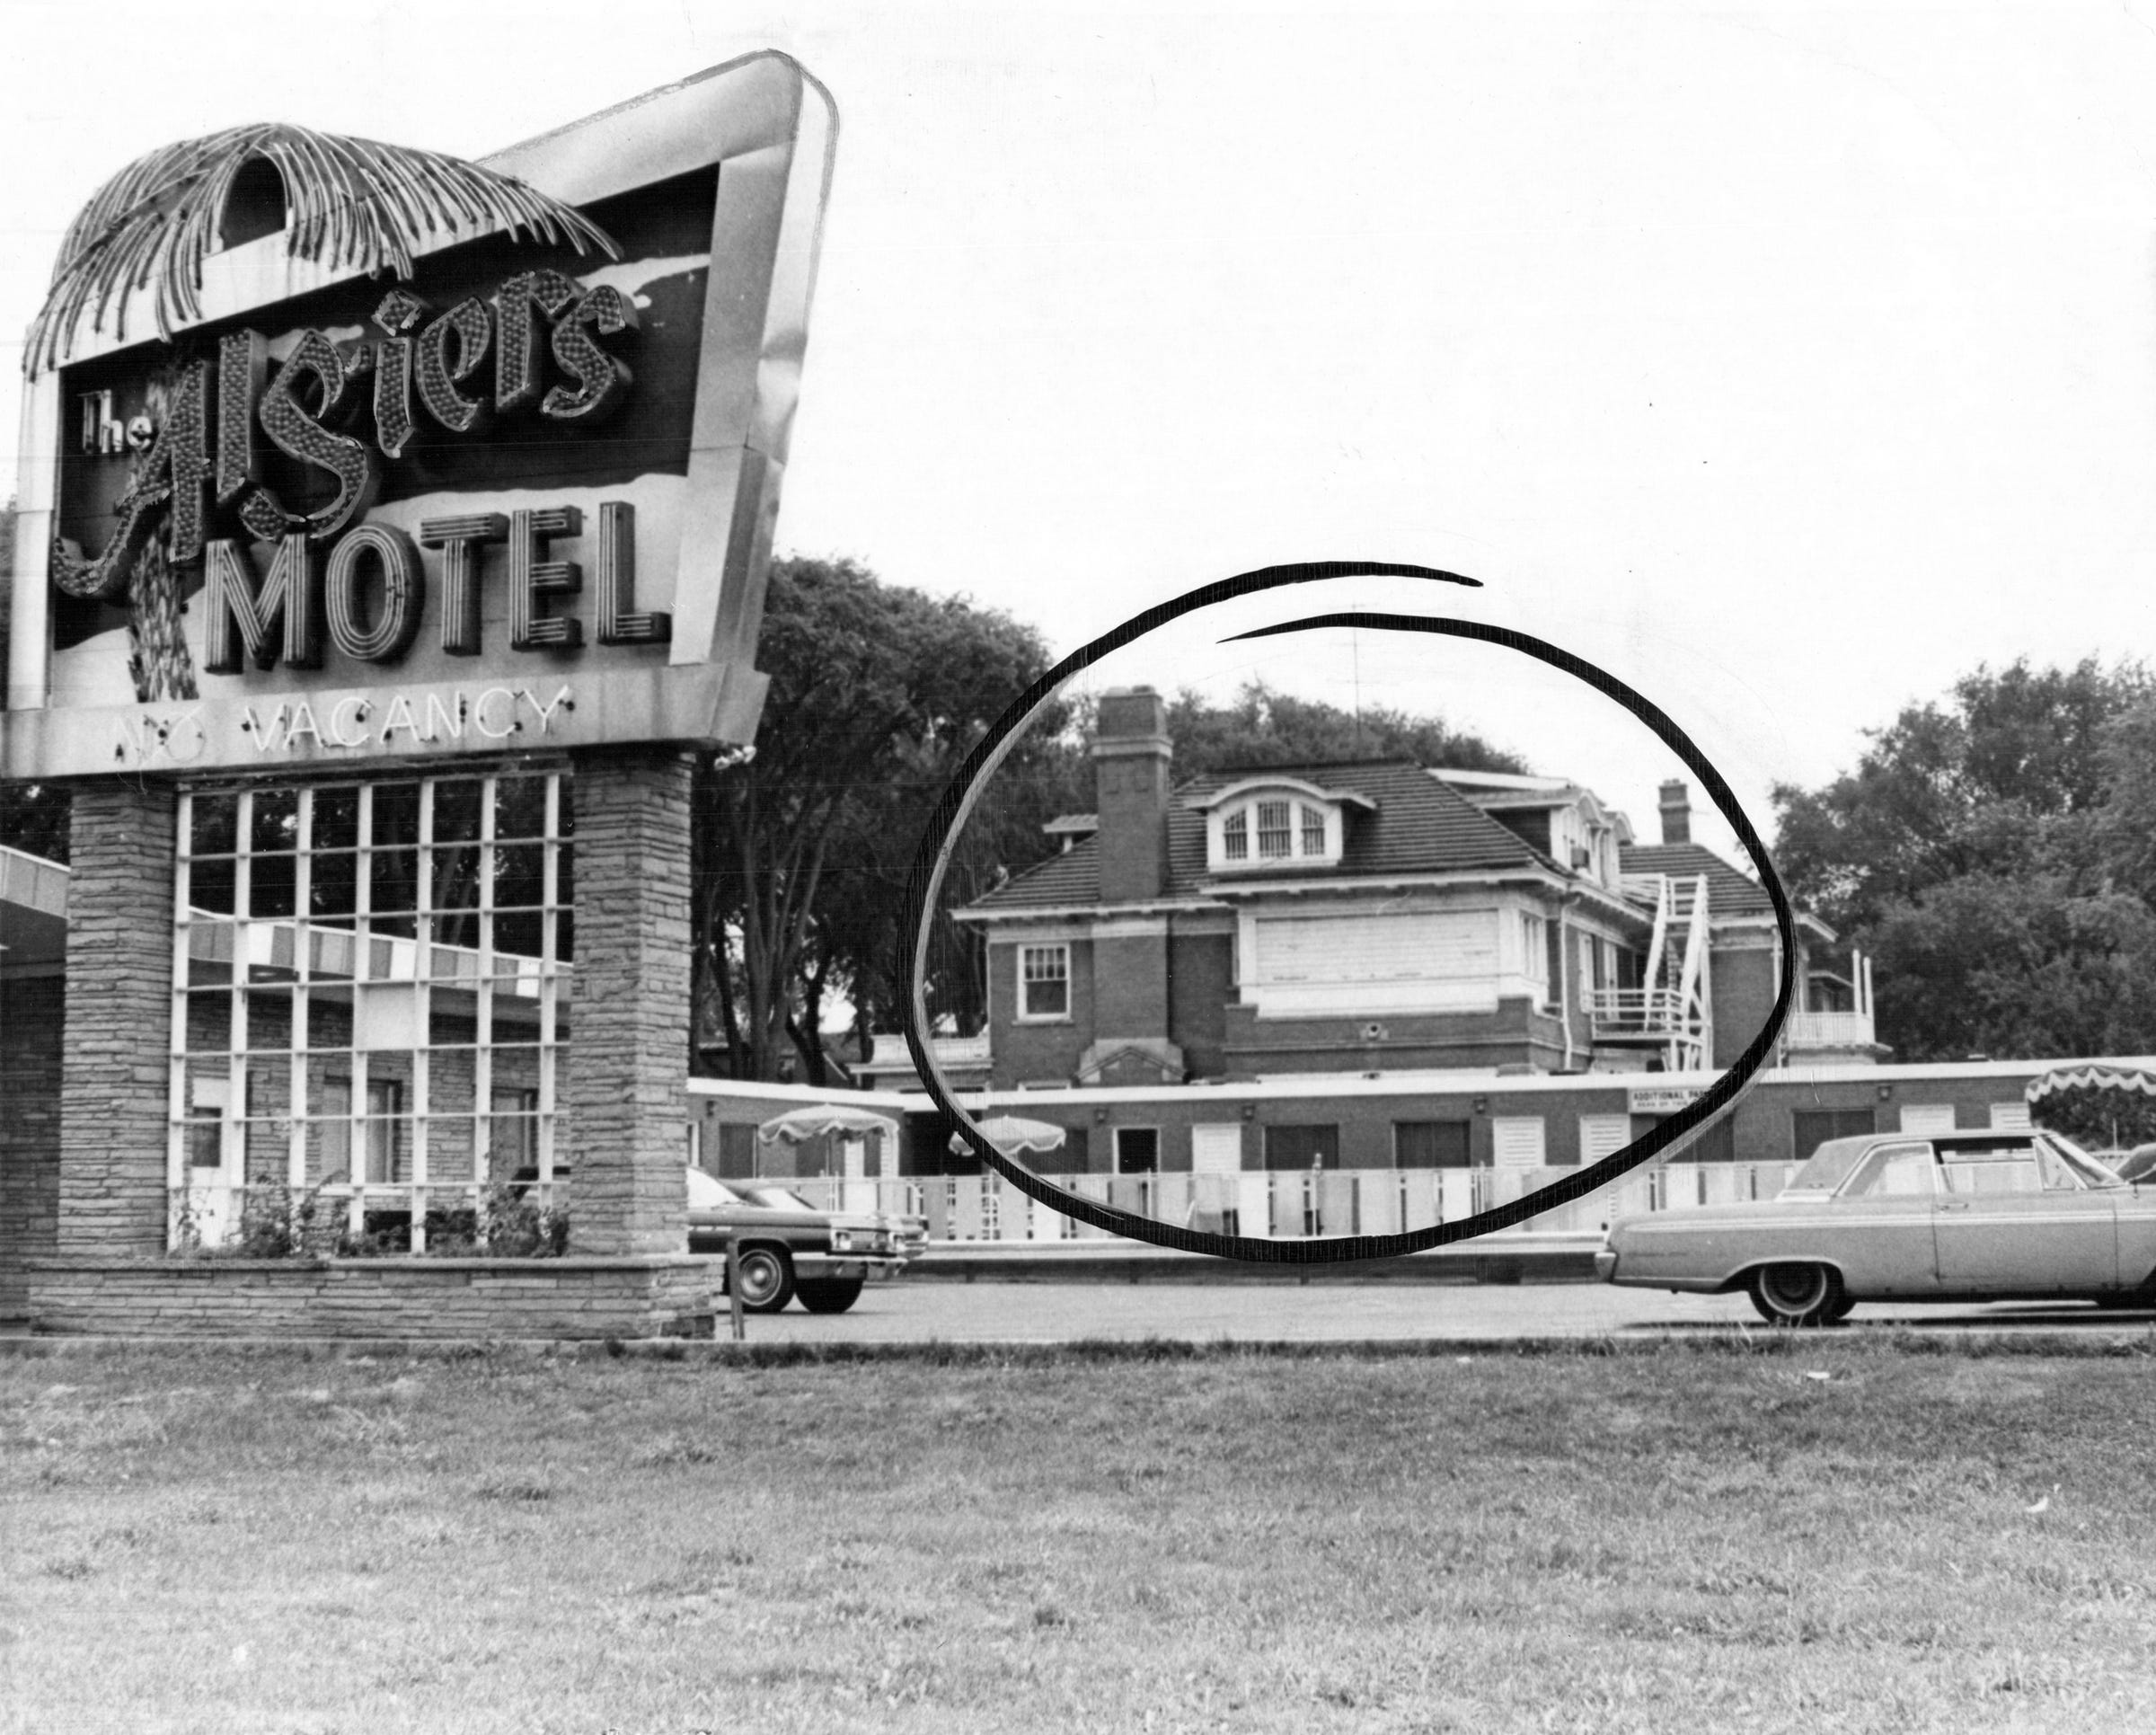 The Manor House, circled, is a three story home turned into an annex for the Algiers Motel where three young black men were found slain in late July 1967. The bodies were found on the first floor, which in this picture, is hidden by a one story wing of the motel.